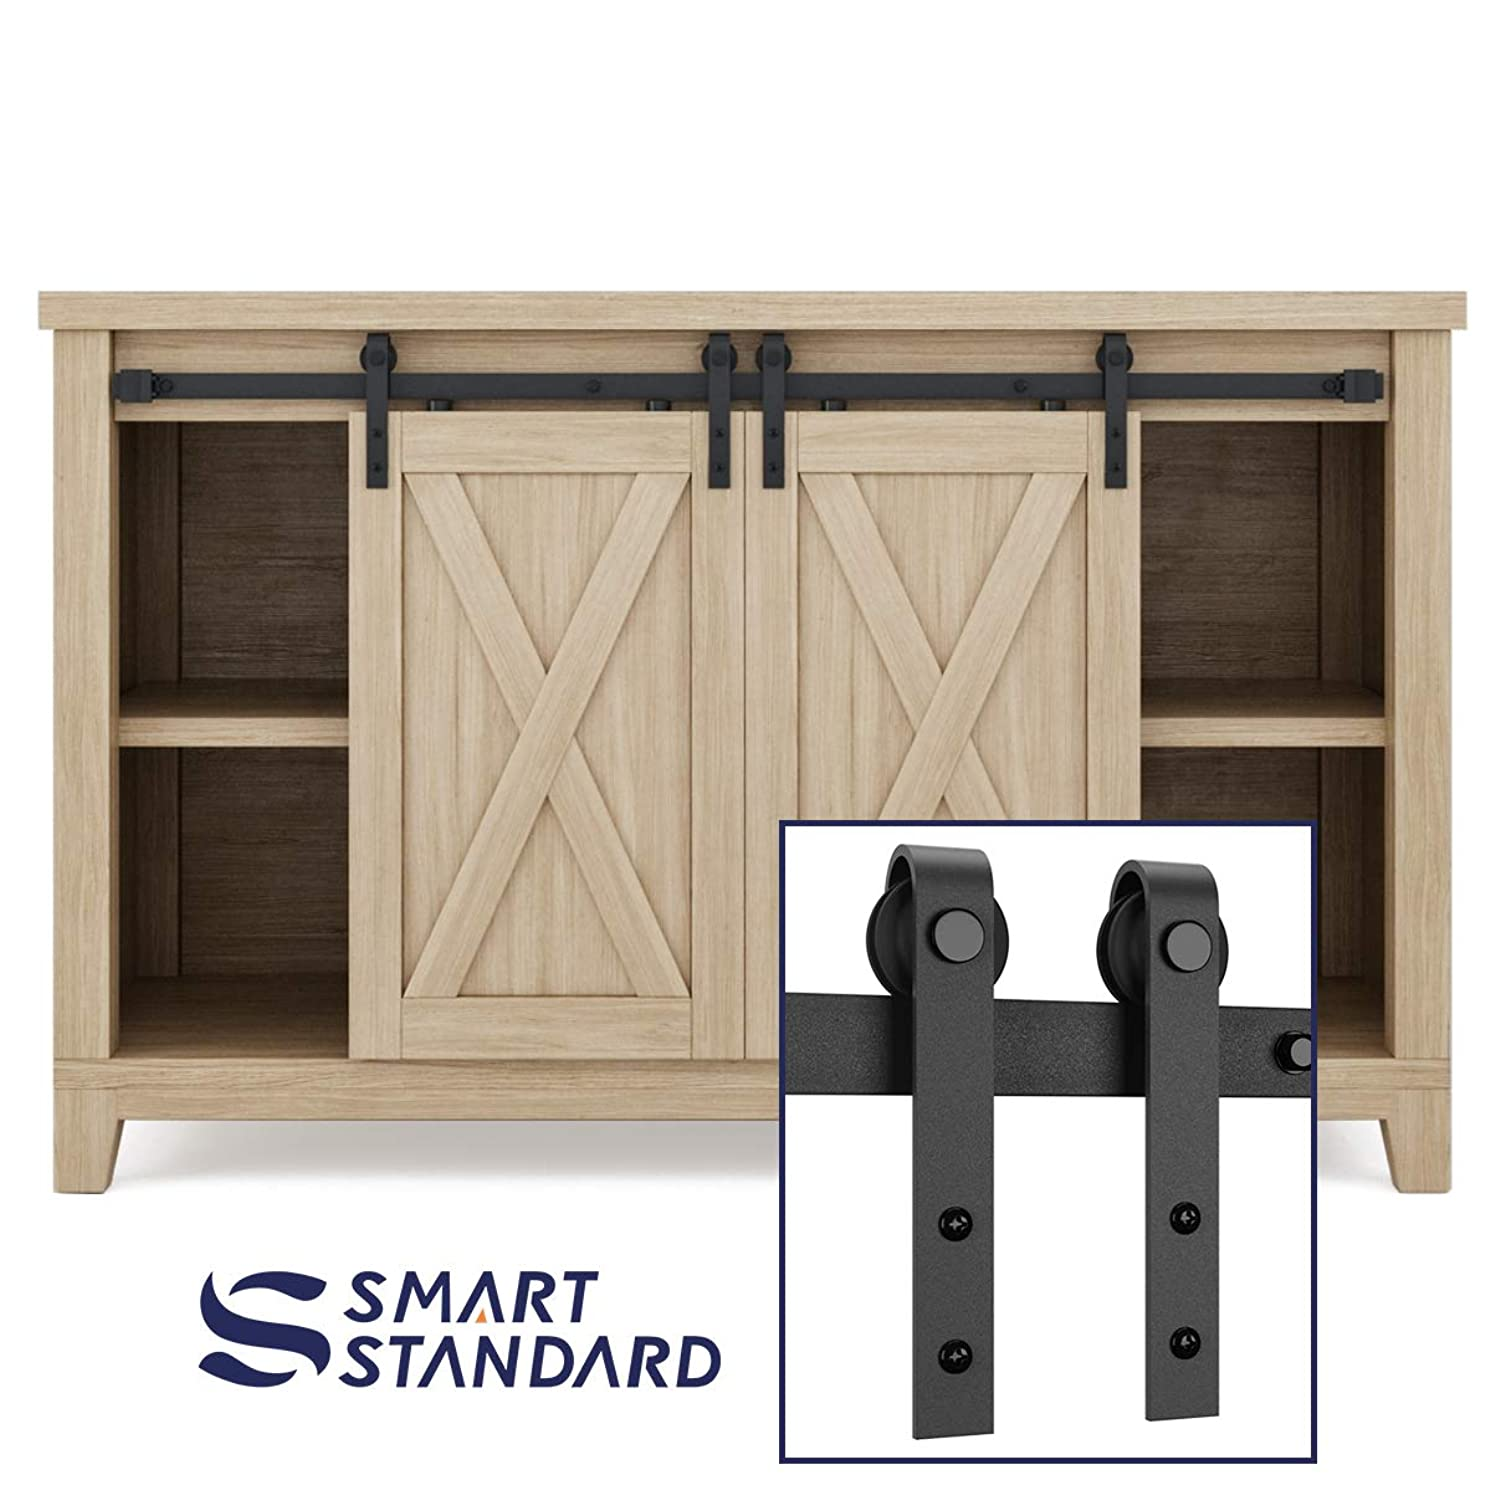 SMARTSTANDARD 4ft Double Cabinet Barn Door Hardware Kit - Super Mini Sliding Door Hardware -for Cabinet TV Stand Console - Simple & Easy to Install -Fit 16